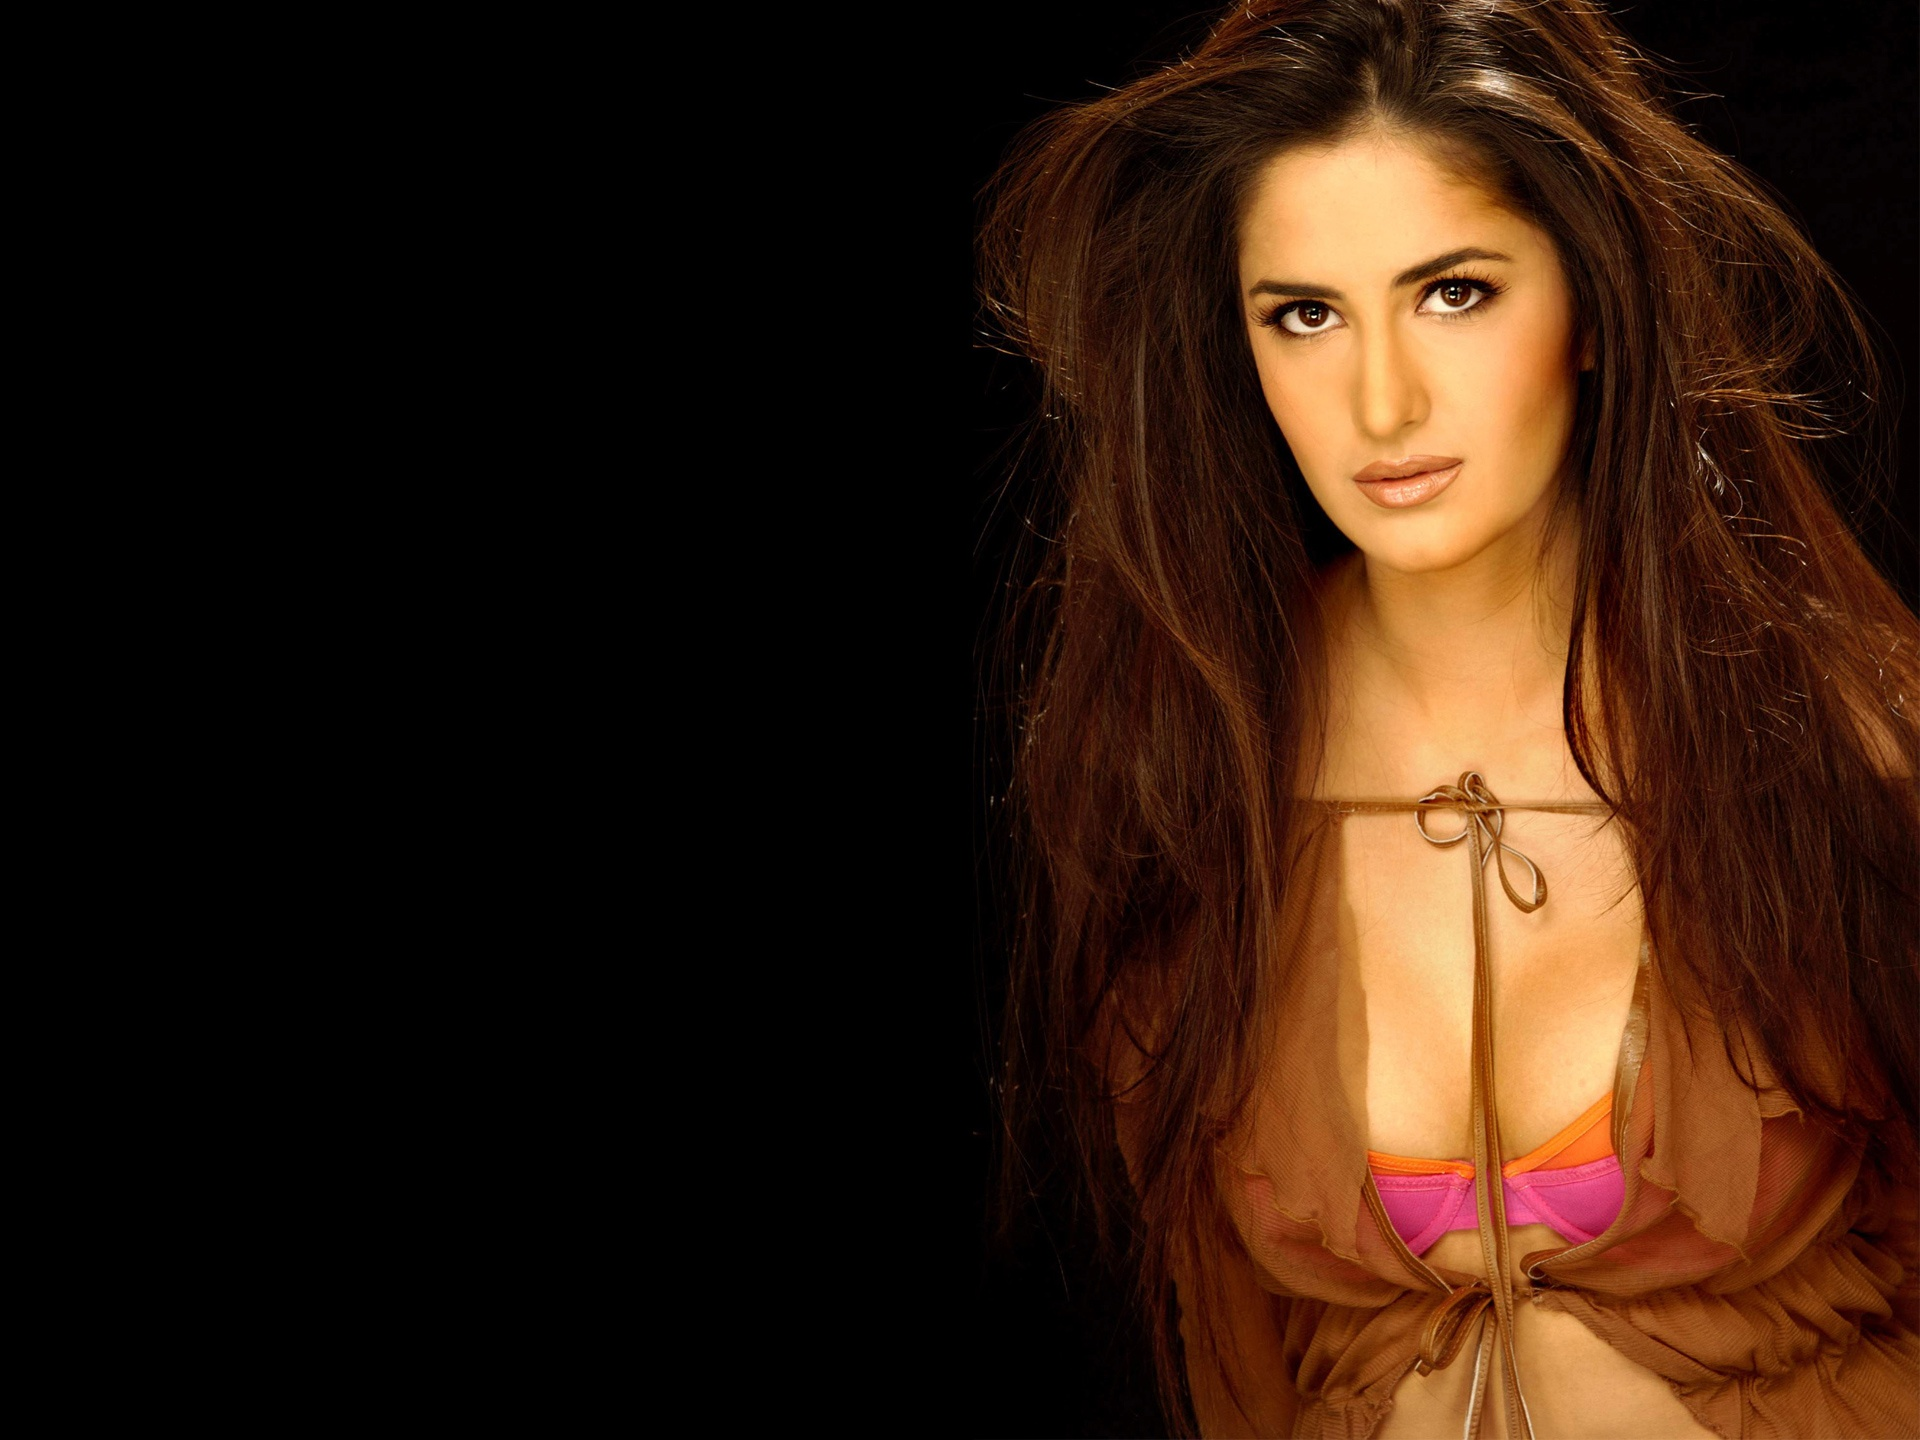 Beautiful katrina kaif photos Katrina Kaif hot and sexy pictures - m